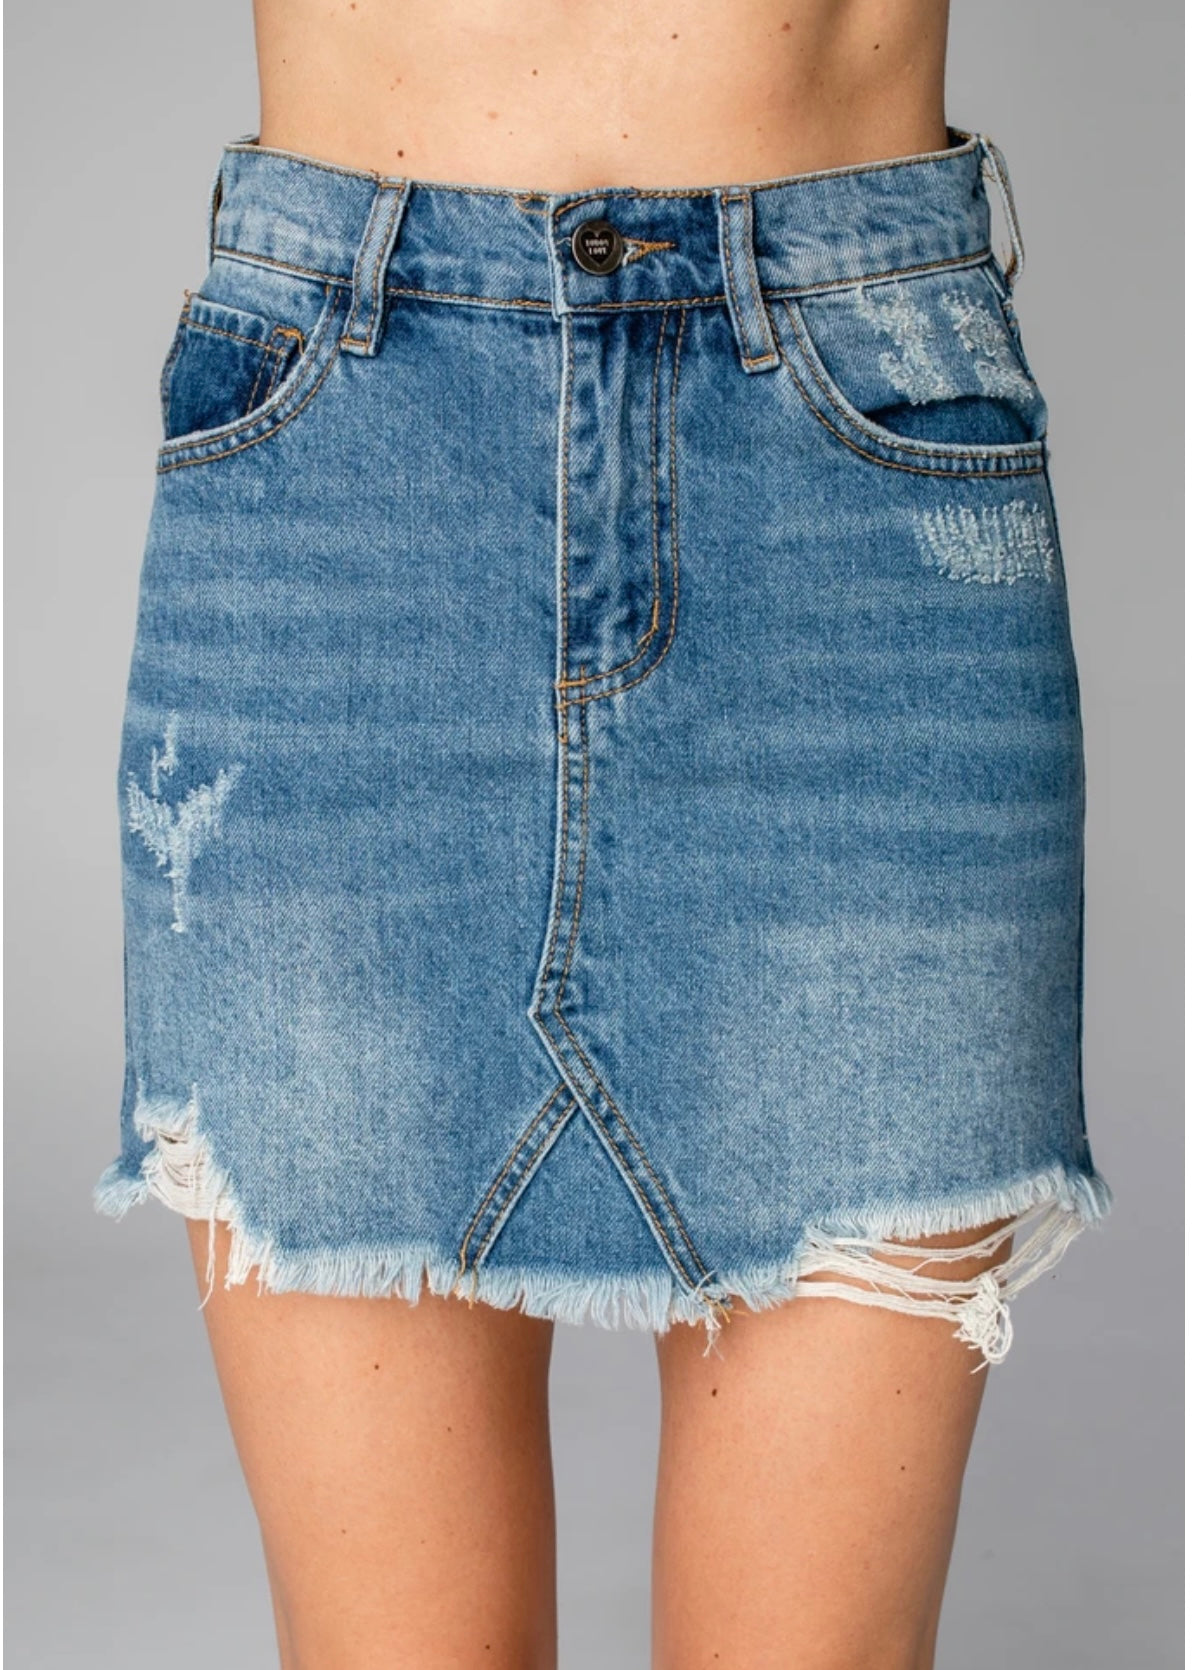 BLUE WASH JEAN SKIRT